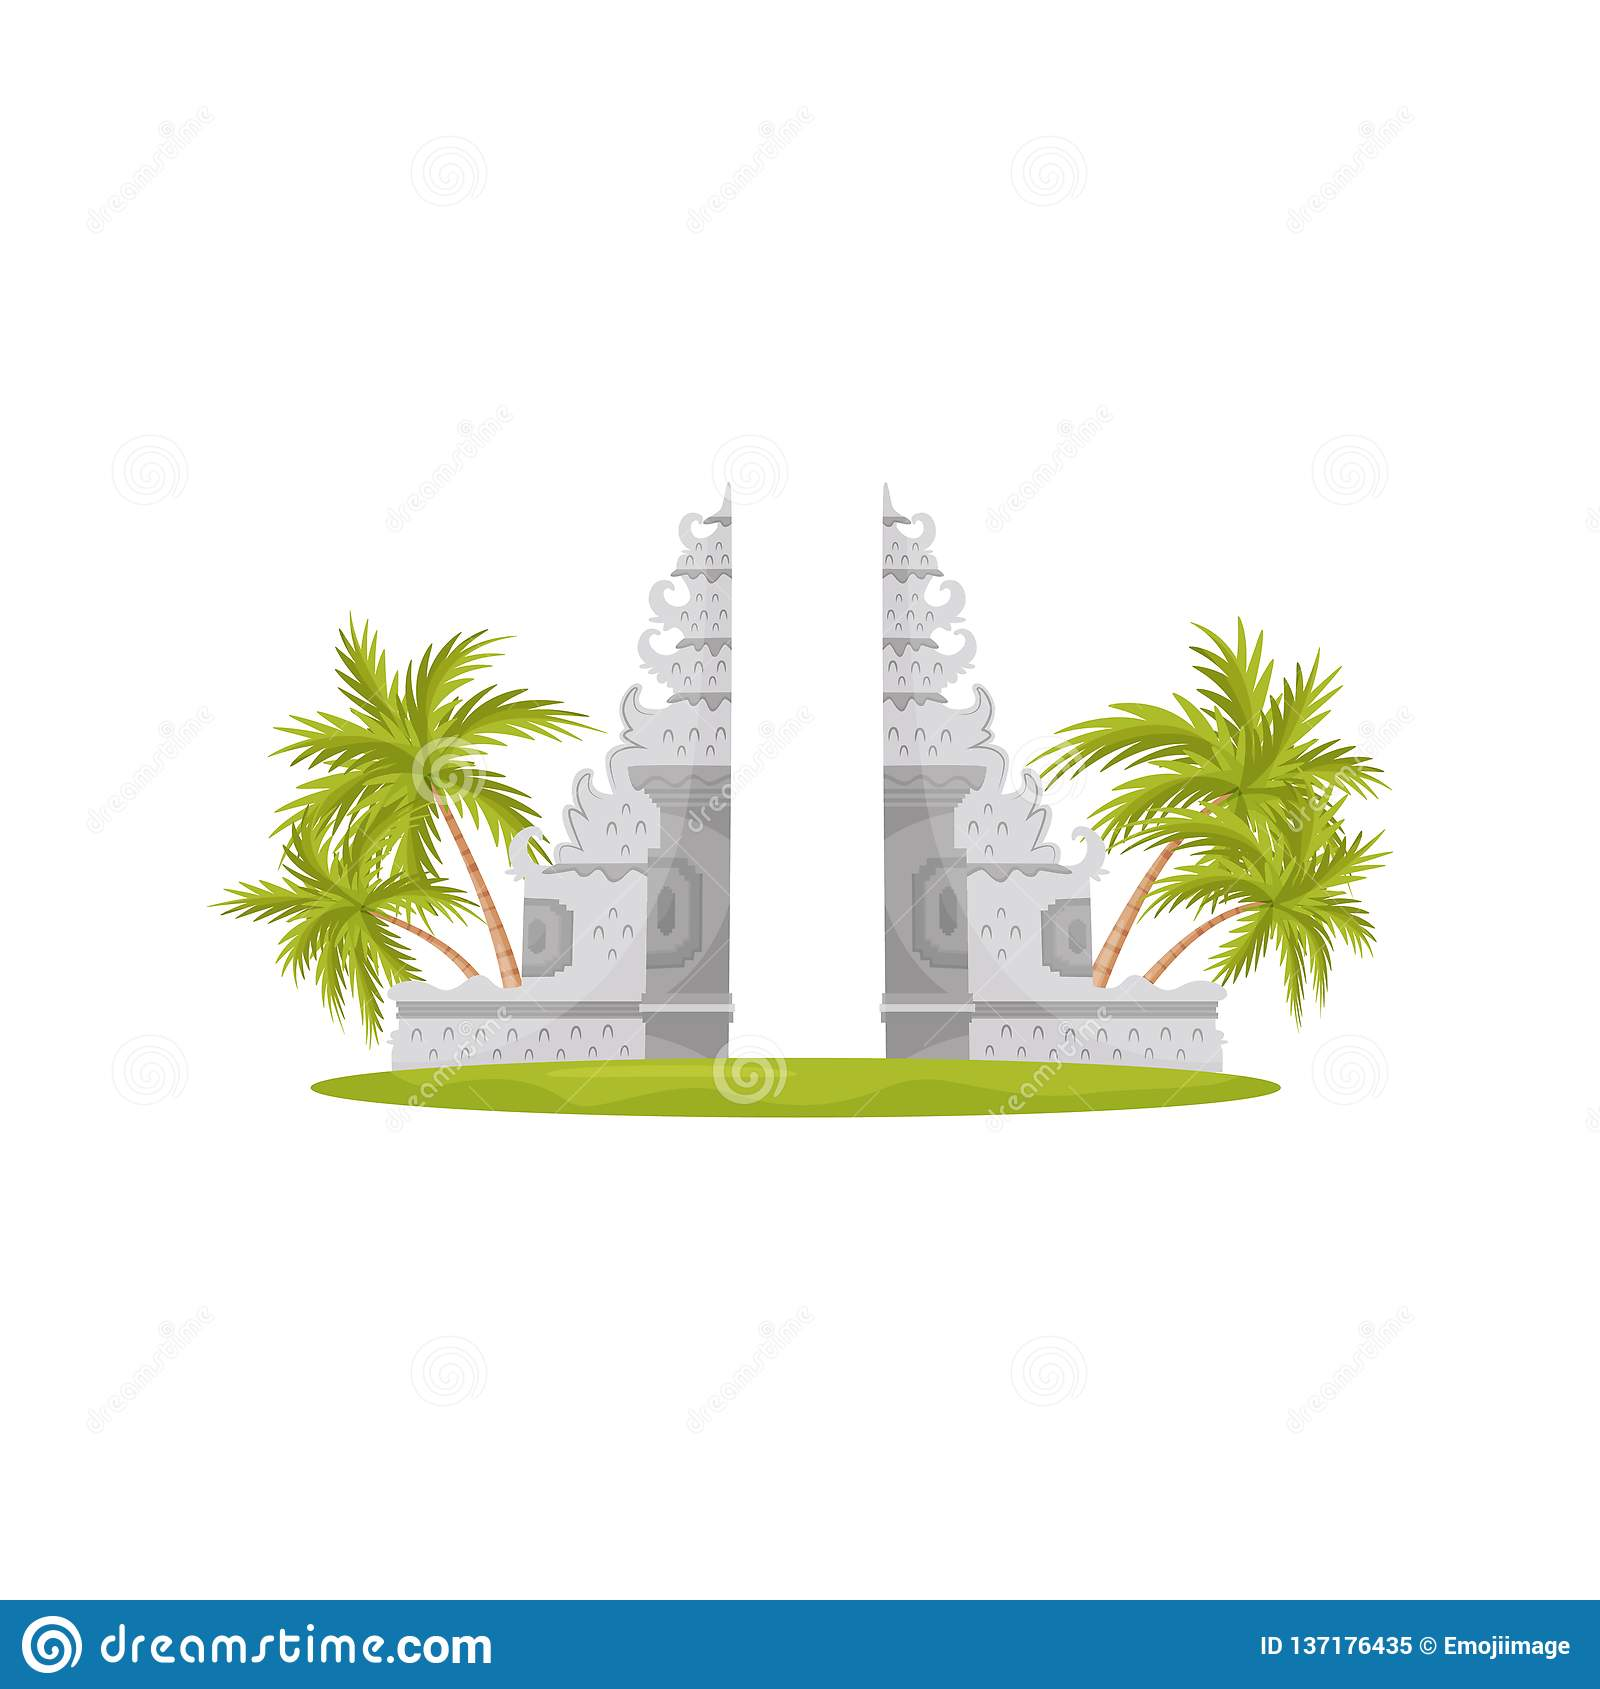 Heaven Gates In Lempuyang Temple Green Palm Trees And Grass Travel To Bali Historical Monument Flat Vector Design Stock Vector Illustration Of Cartoon Background 137176435